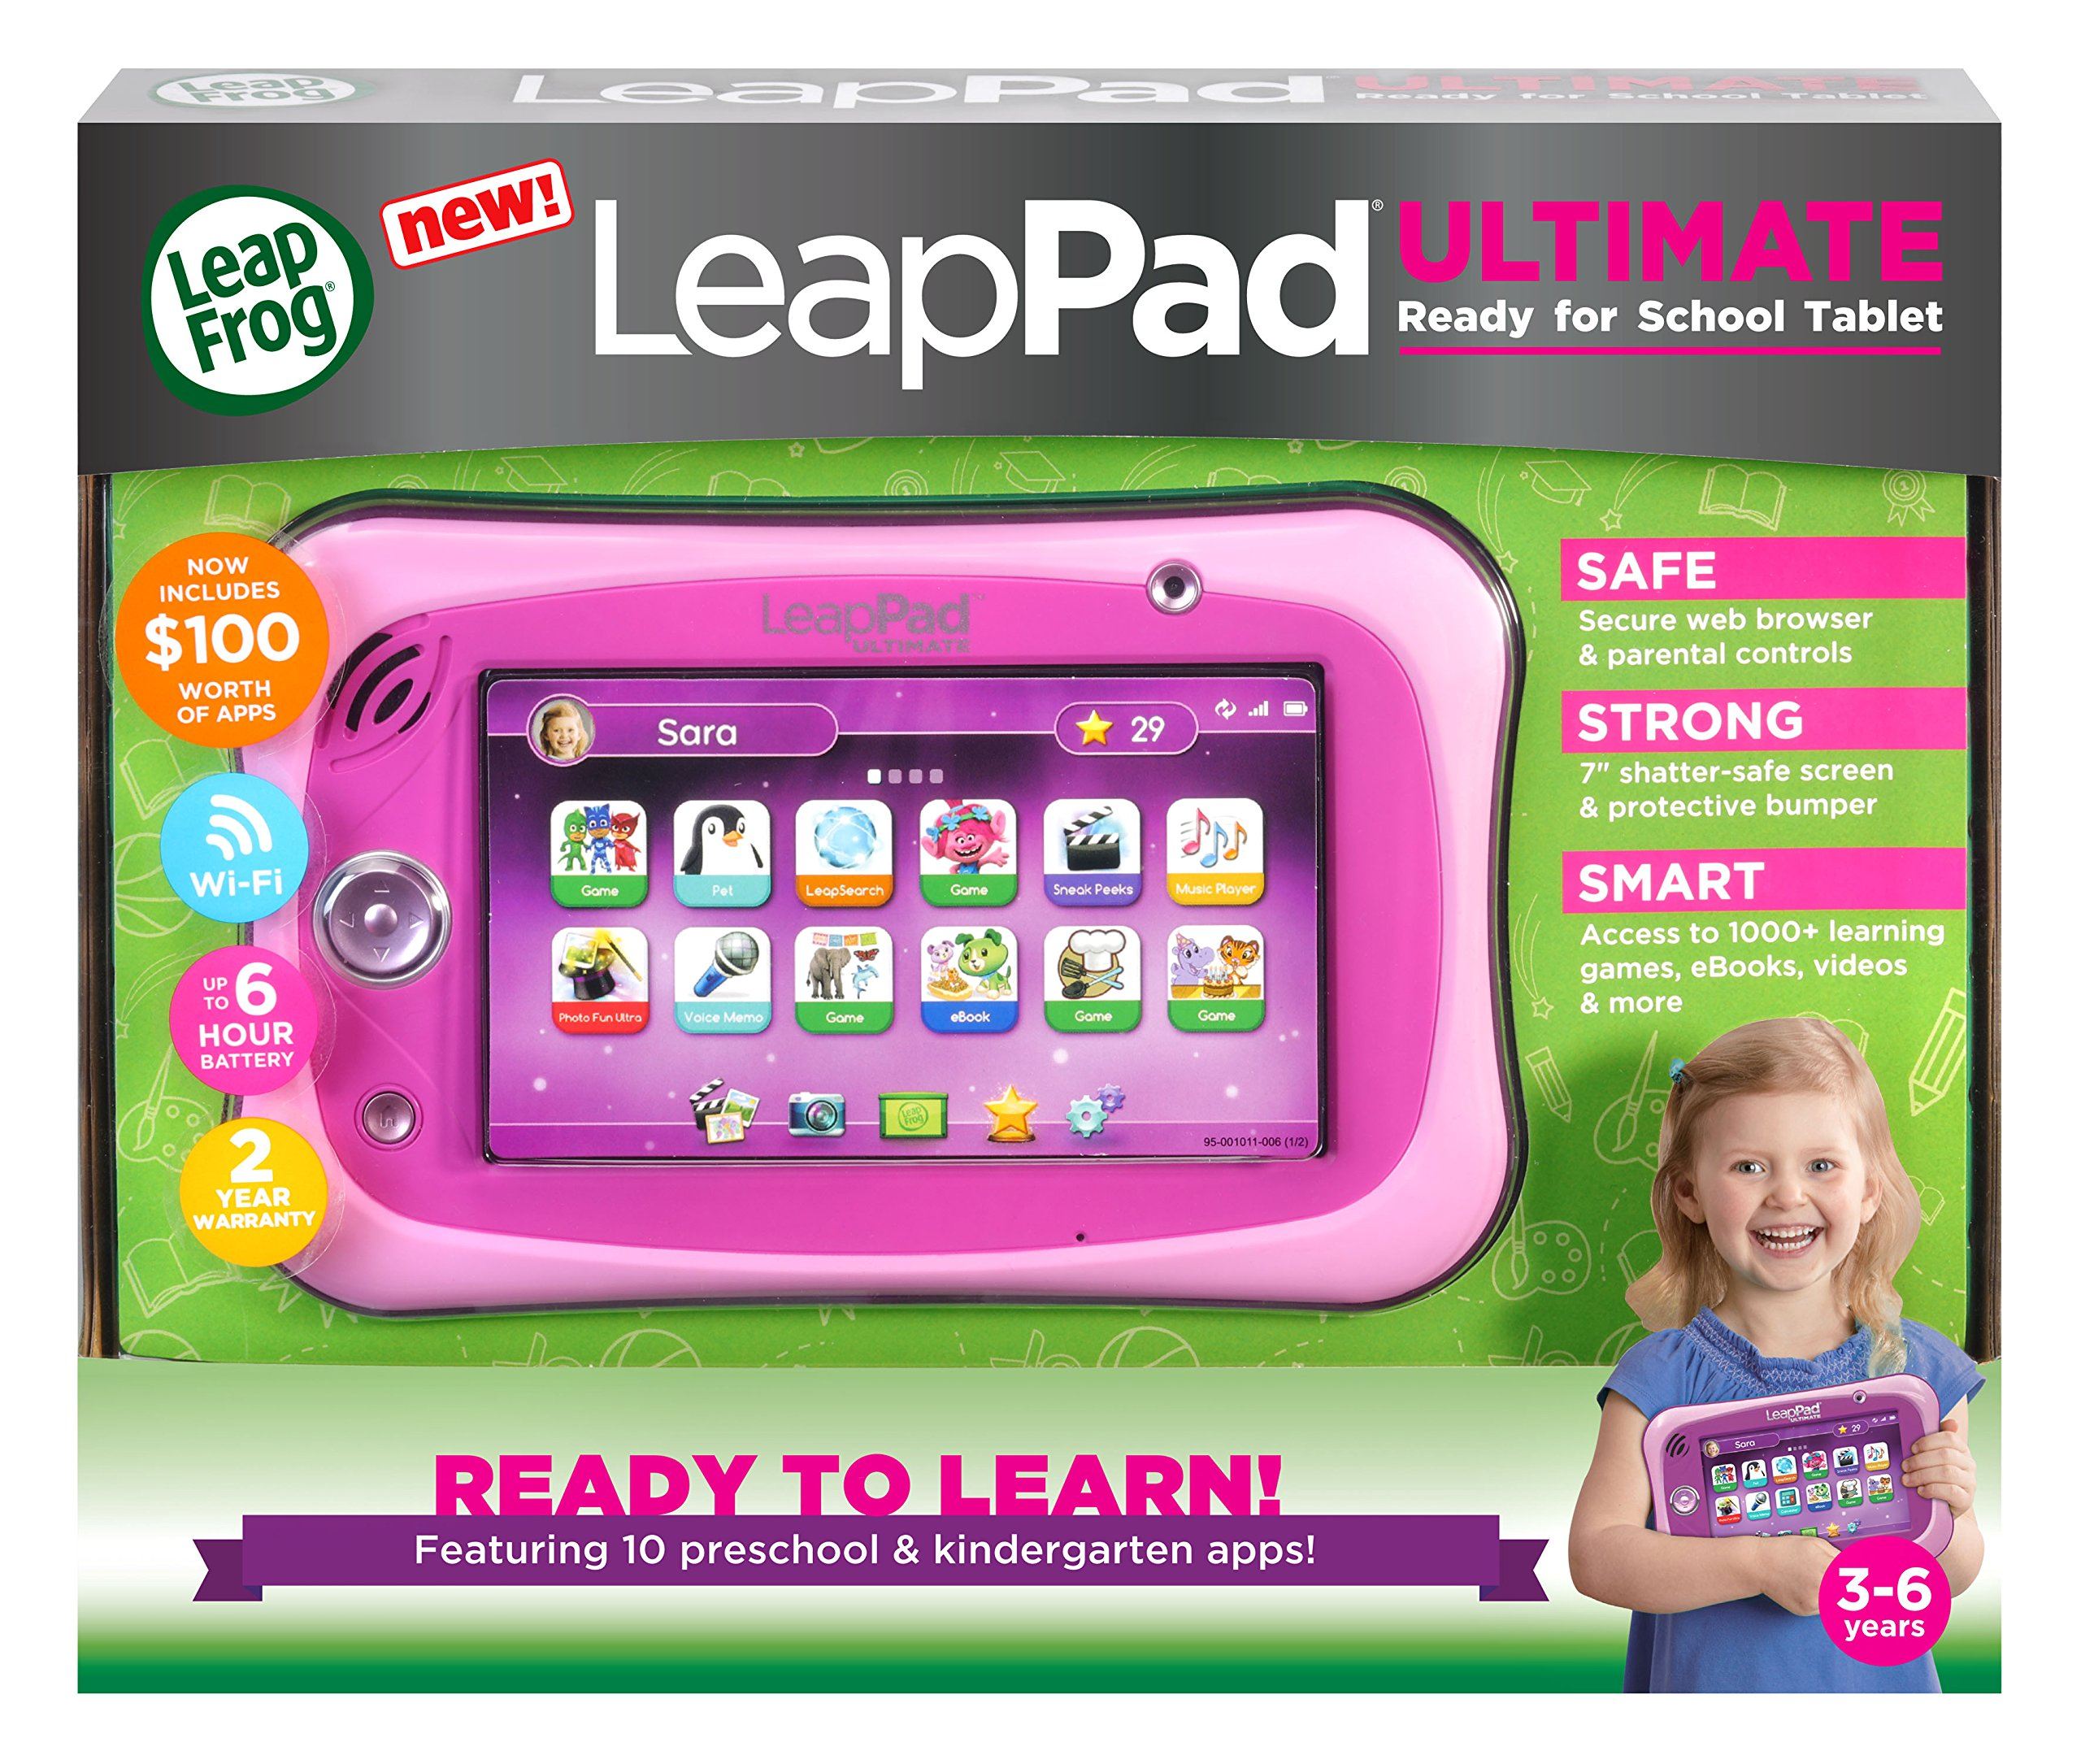 LeapFrog LeapPad Ultimate Ready for School Tablet, Pink by LeapFrog (Image #5)